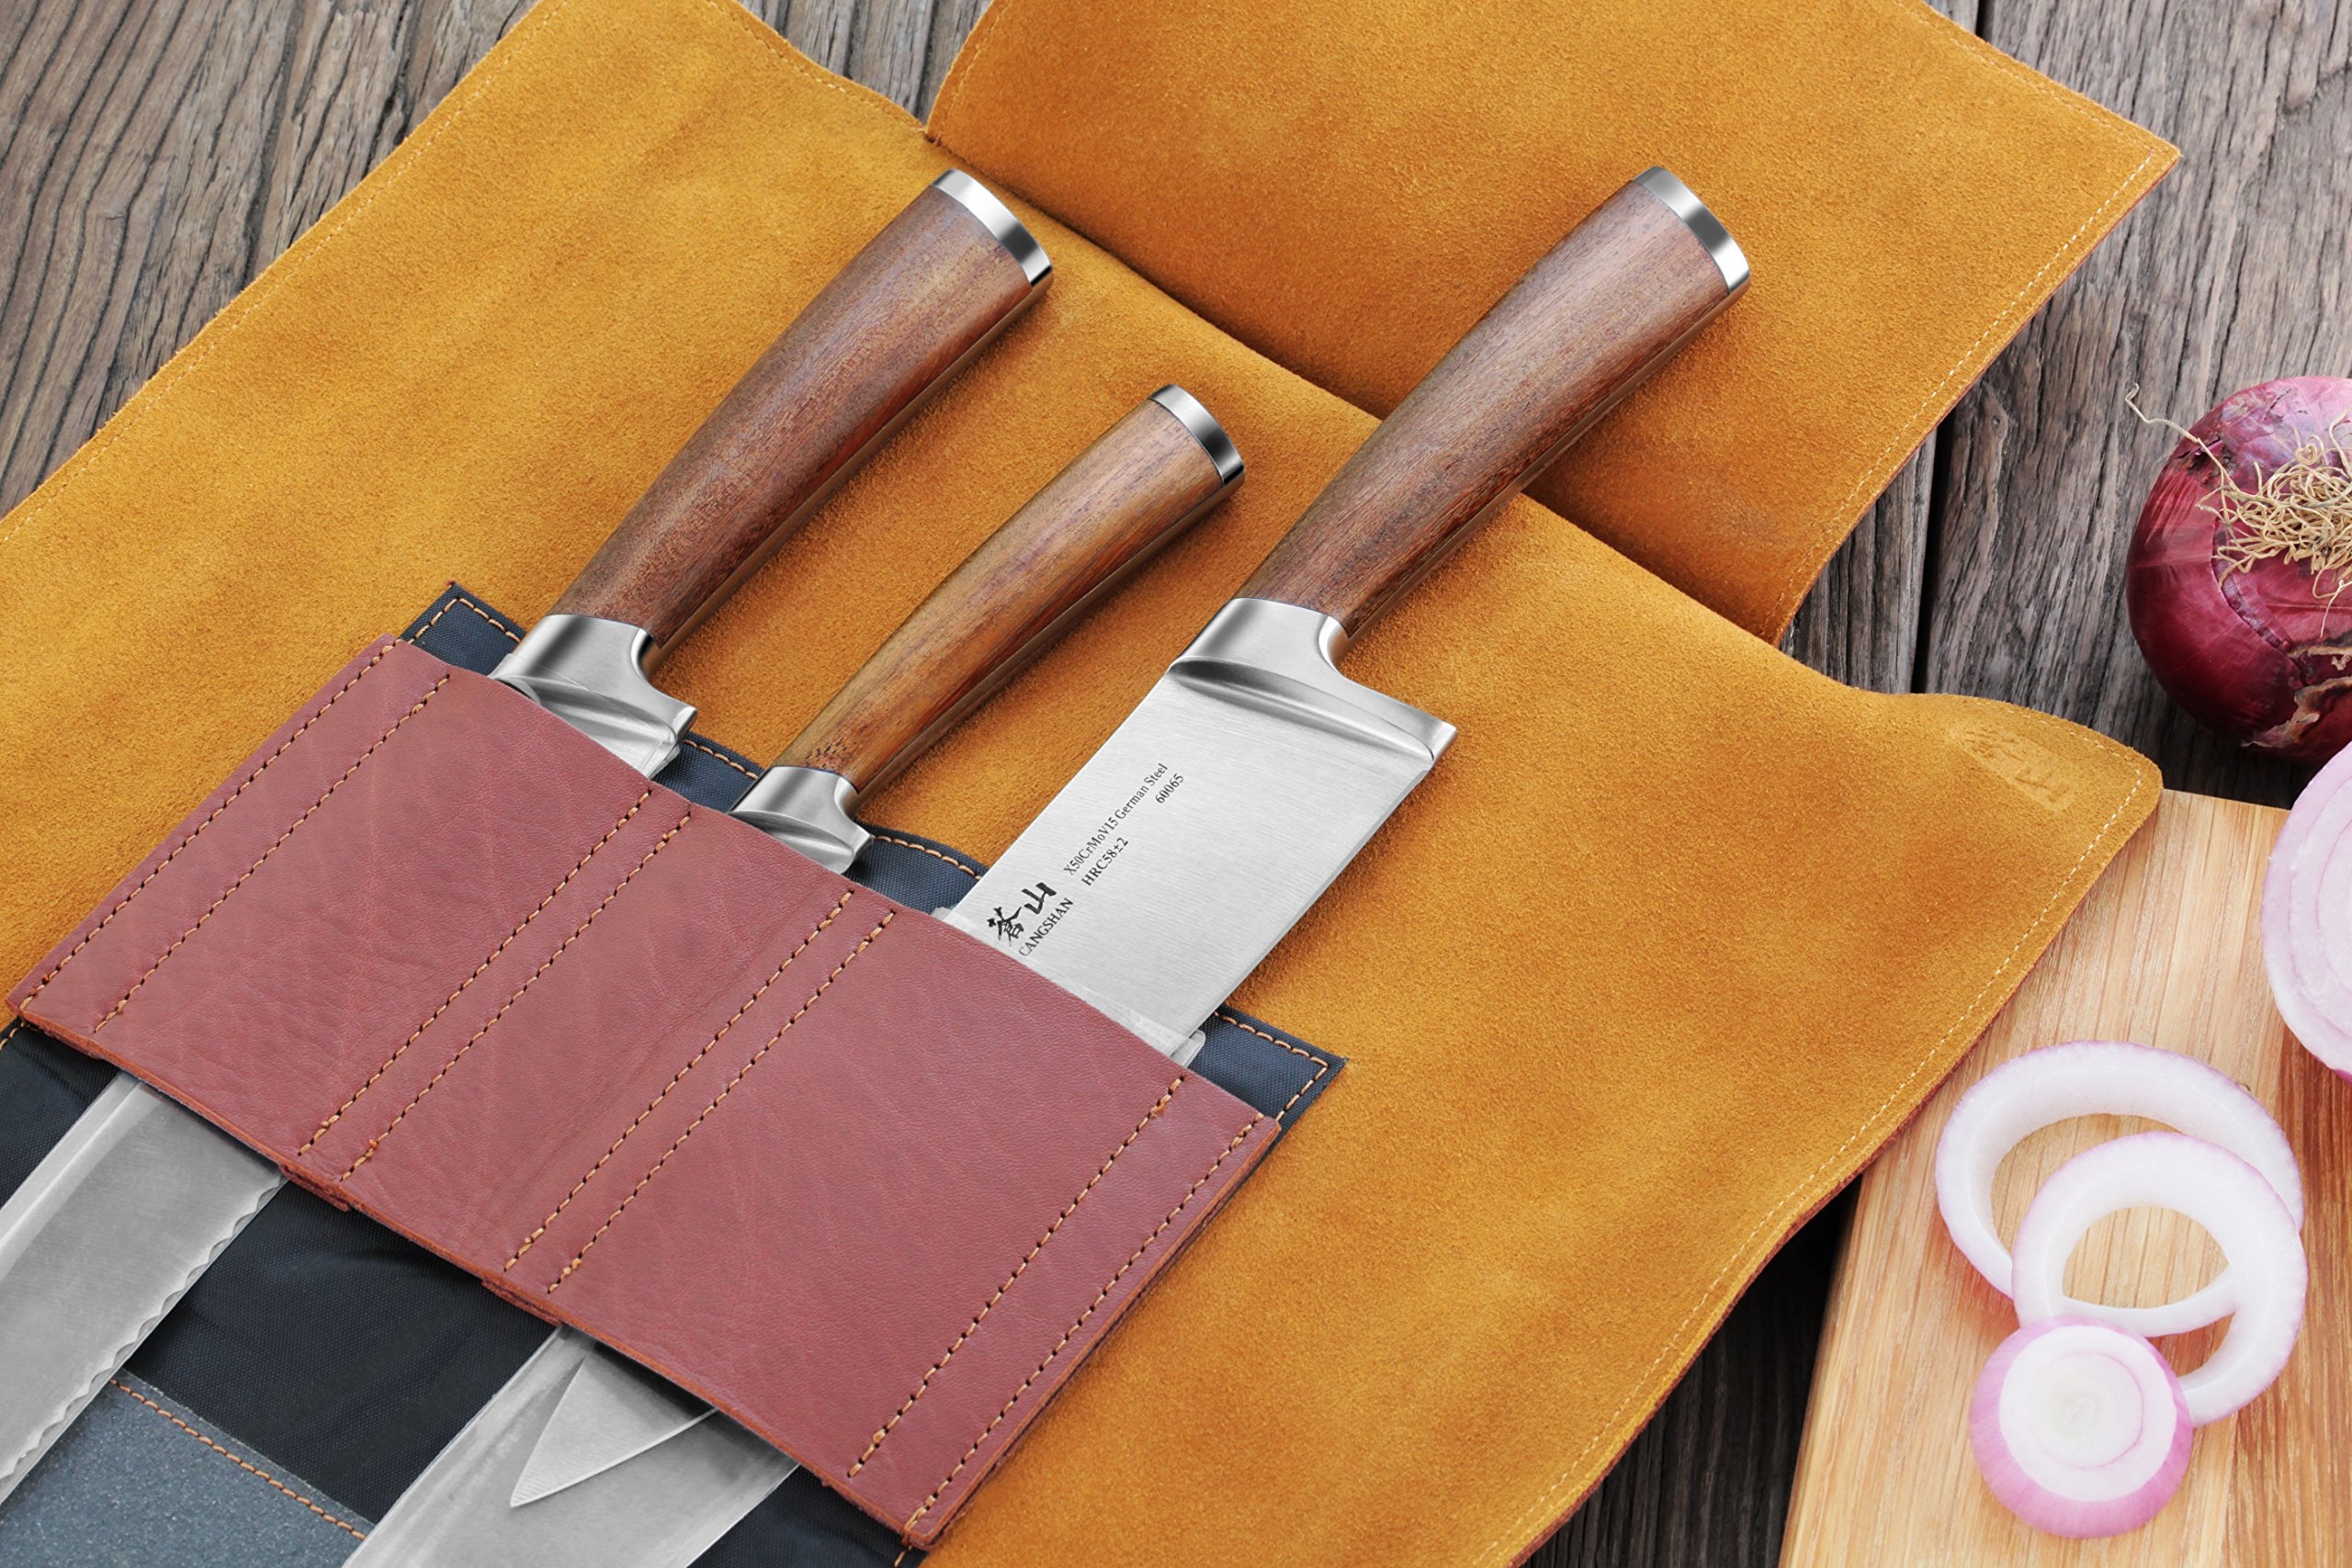 Cangshan Cutlery | H1 Series German Steel X50Cr15MoV Essential Kitchen Knives 4 Unique Patent Pending Design that focuses on solid Teak wood ergonomics handle X50Cr15MoV German Steel forged with HRC 58 +/- 2 on the Rockwell Hardness Scale Handcrafted genuine leather roll works with the knives tastefully